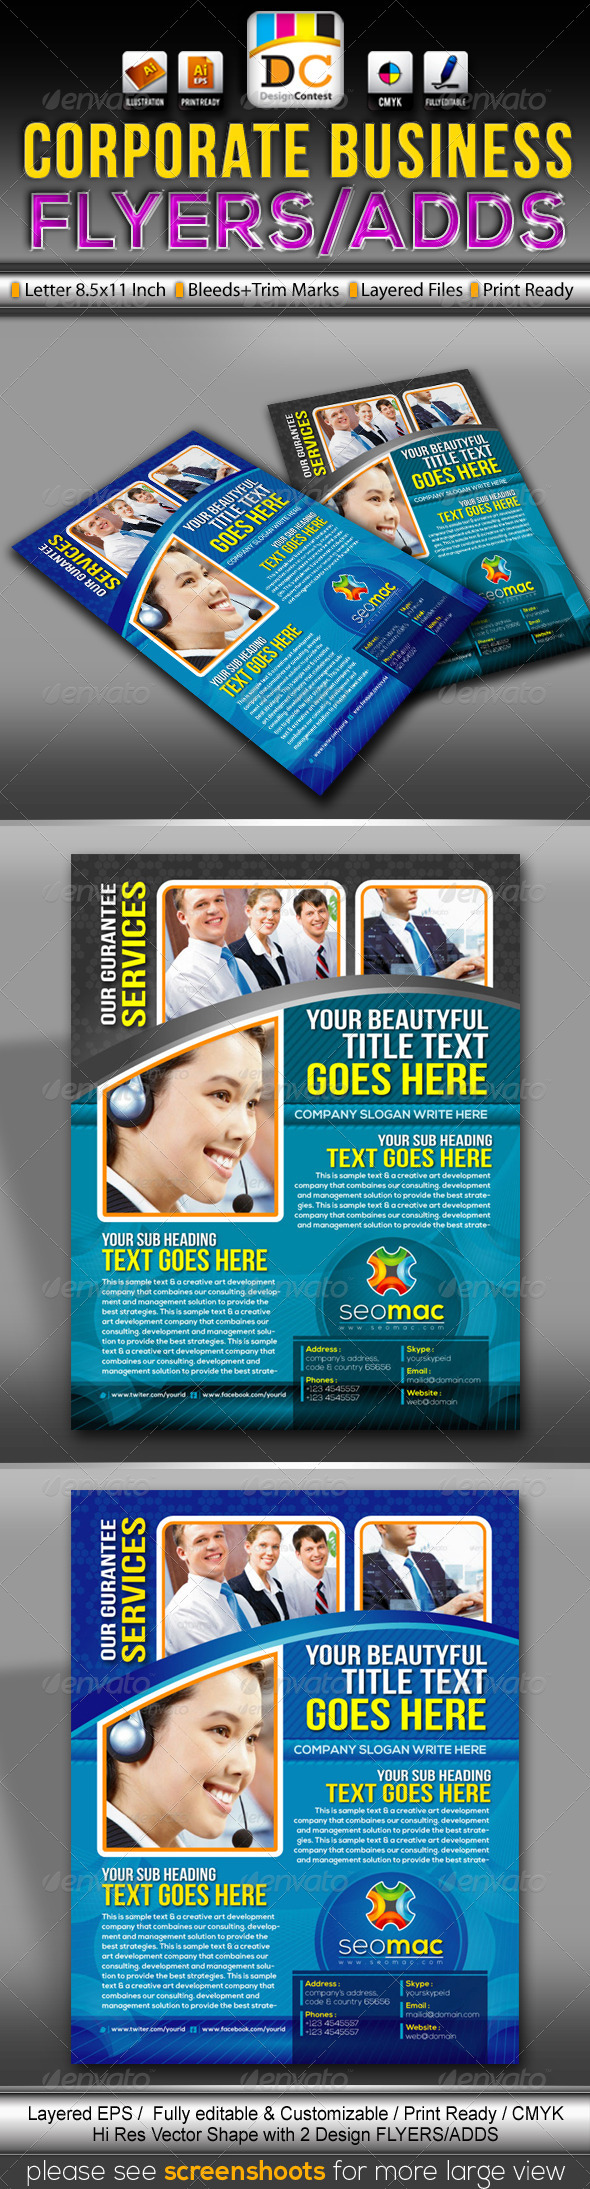 GraphicRiver SeoMac Corporate Business Flyers Adds 3414722